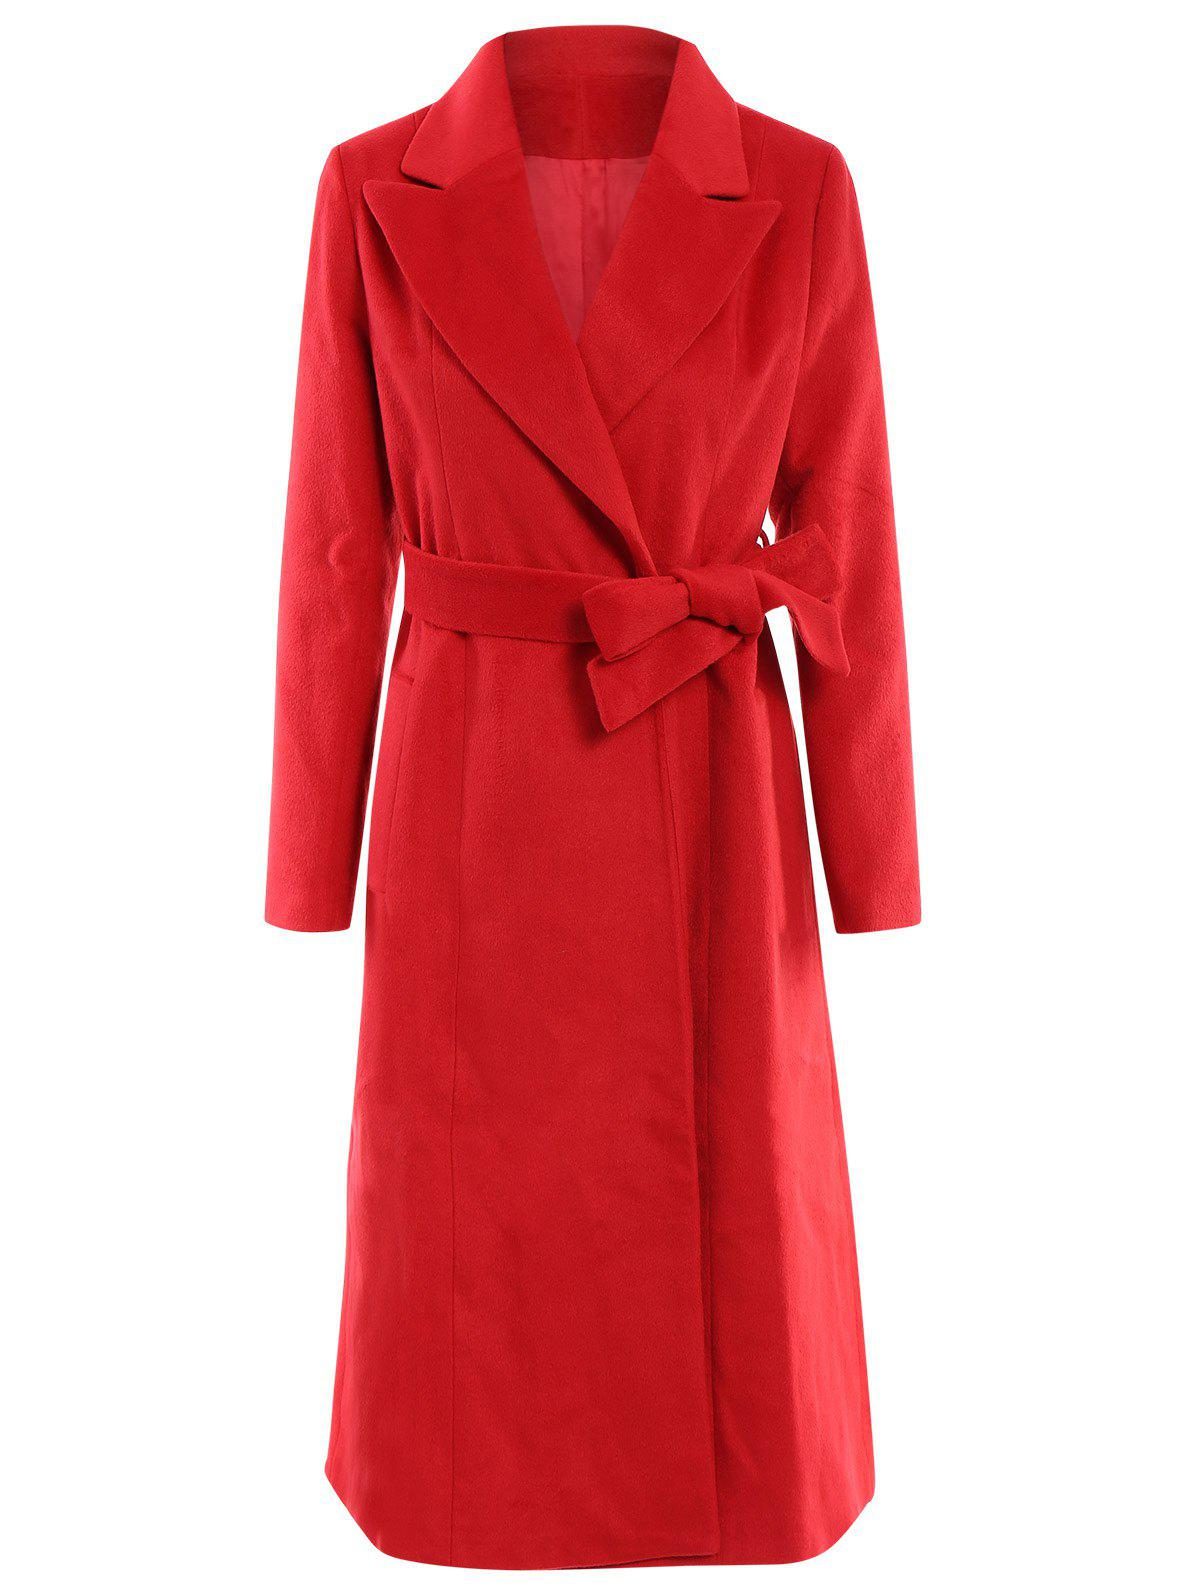 Noble Solid Color Lapel Extra Long Wool Coat For Women - RED 3XL